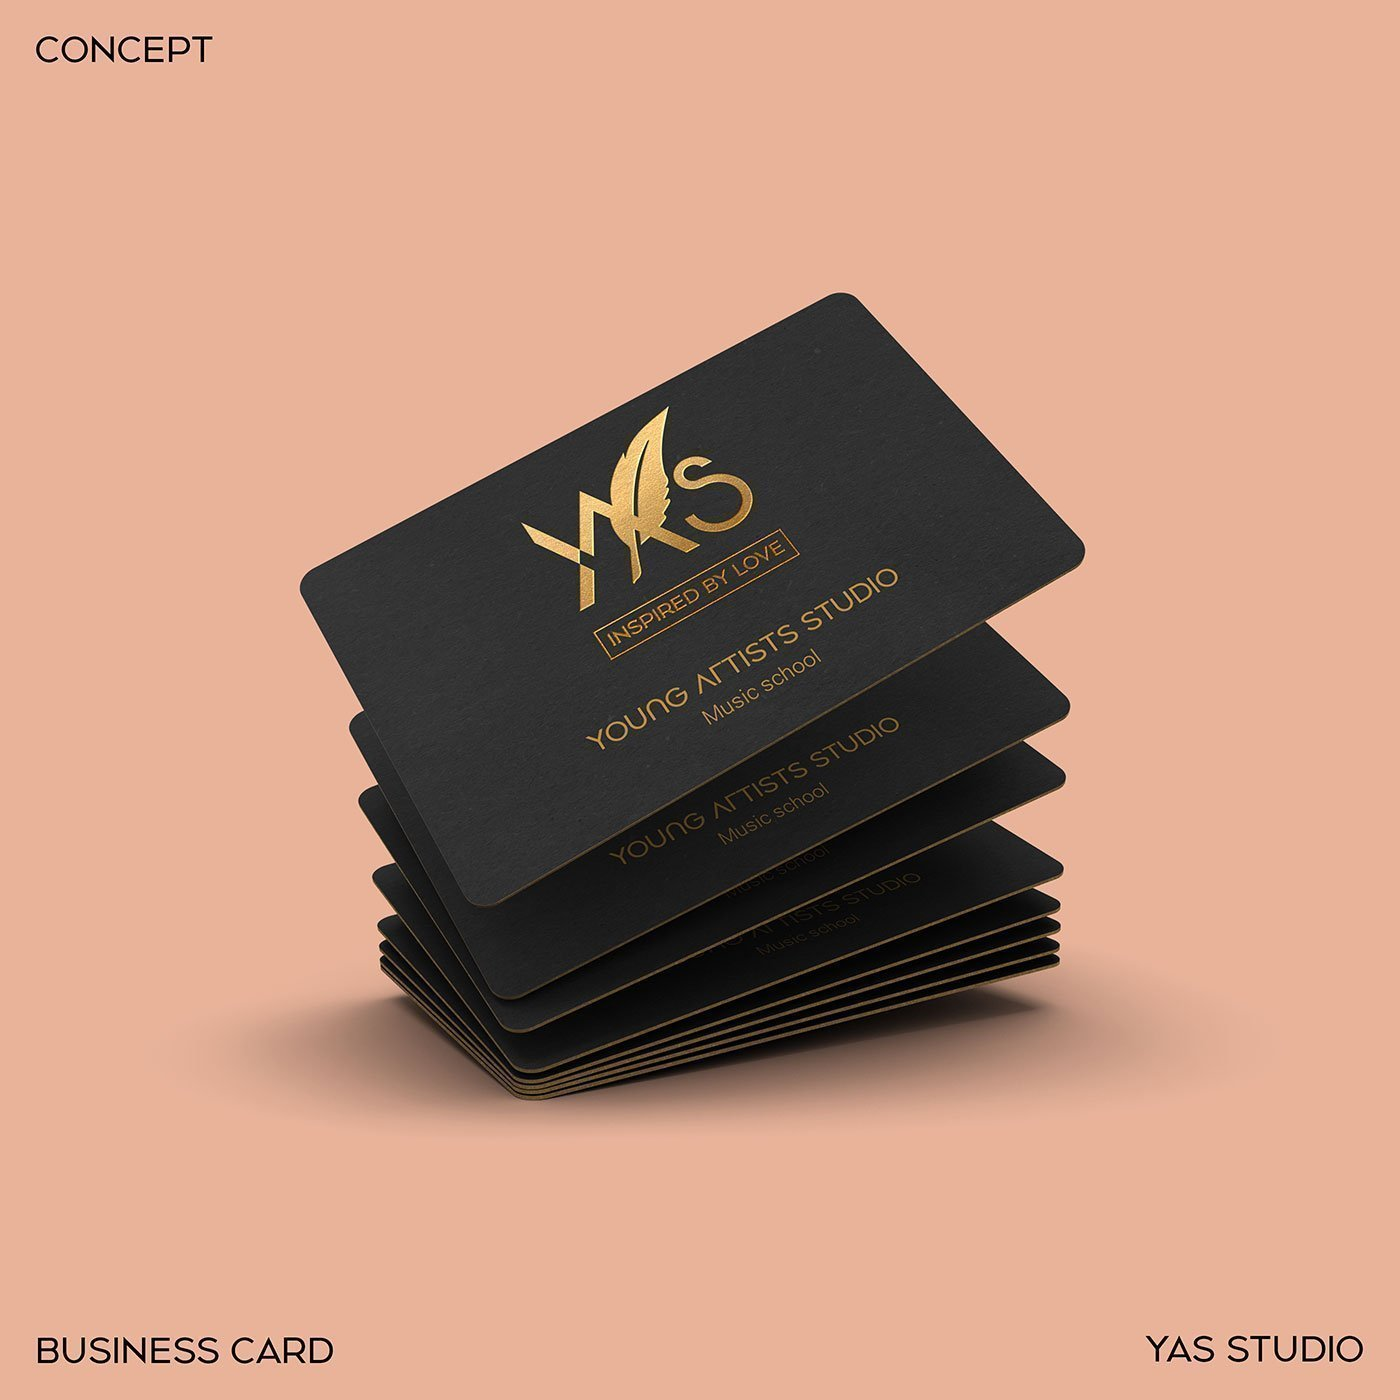 YAS Young Artists Studio official logo business card-mockup design-branding design-visual-identity-design Vietnam-graphic-design-and-branding-web-design-professional-logo-design-Helixgram